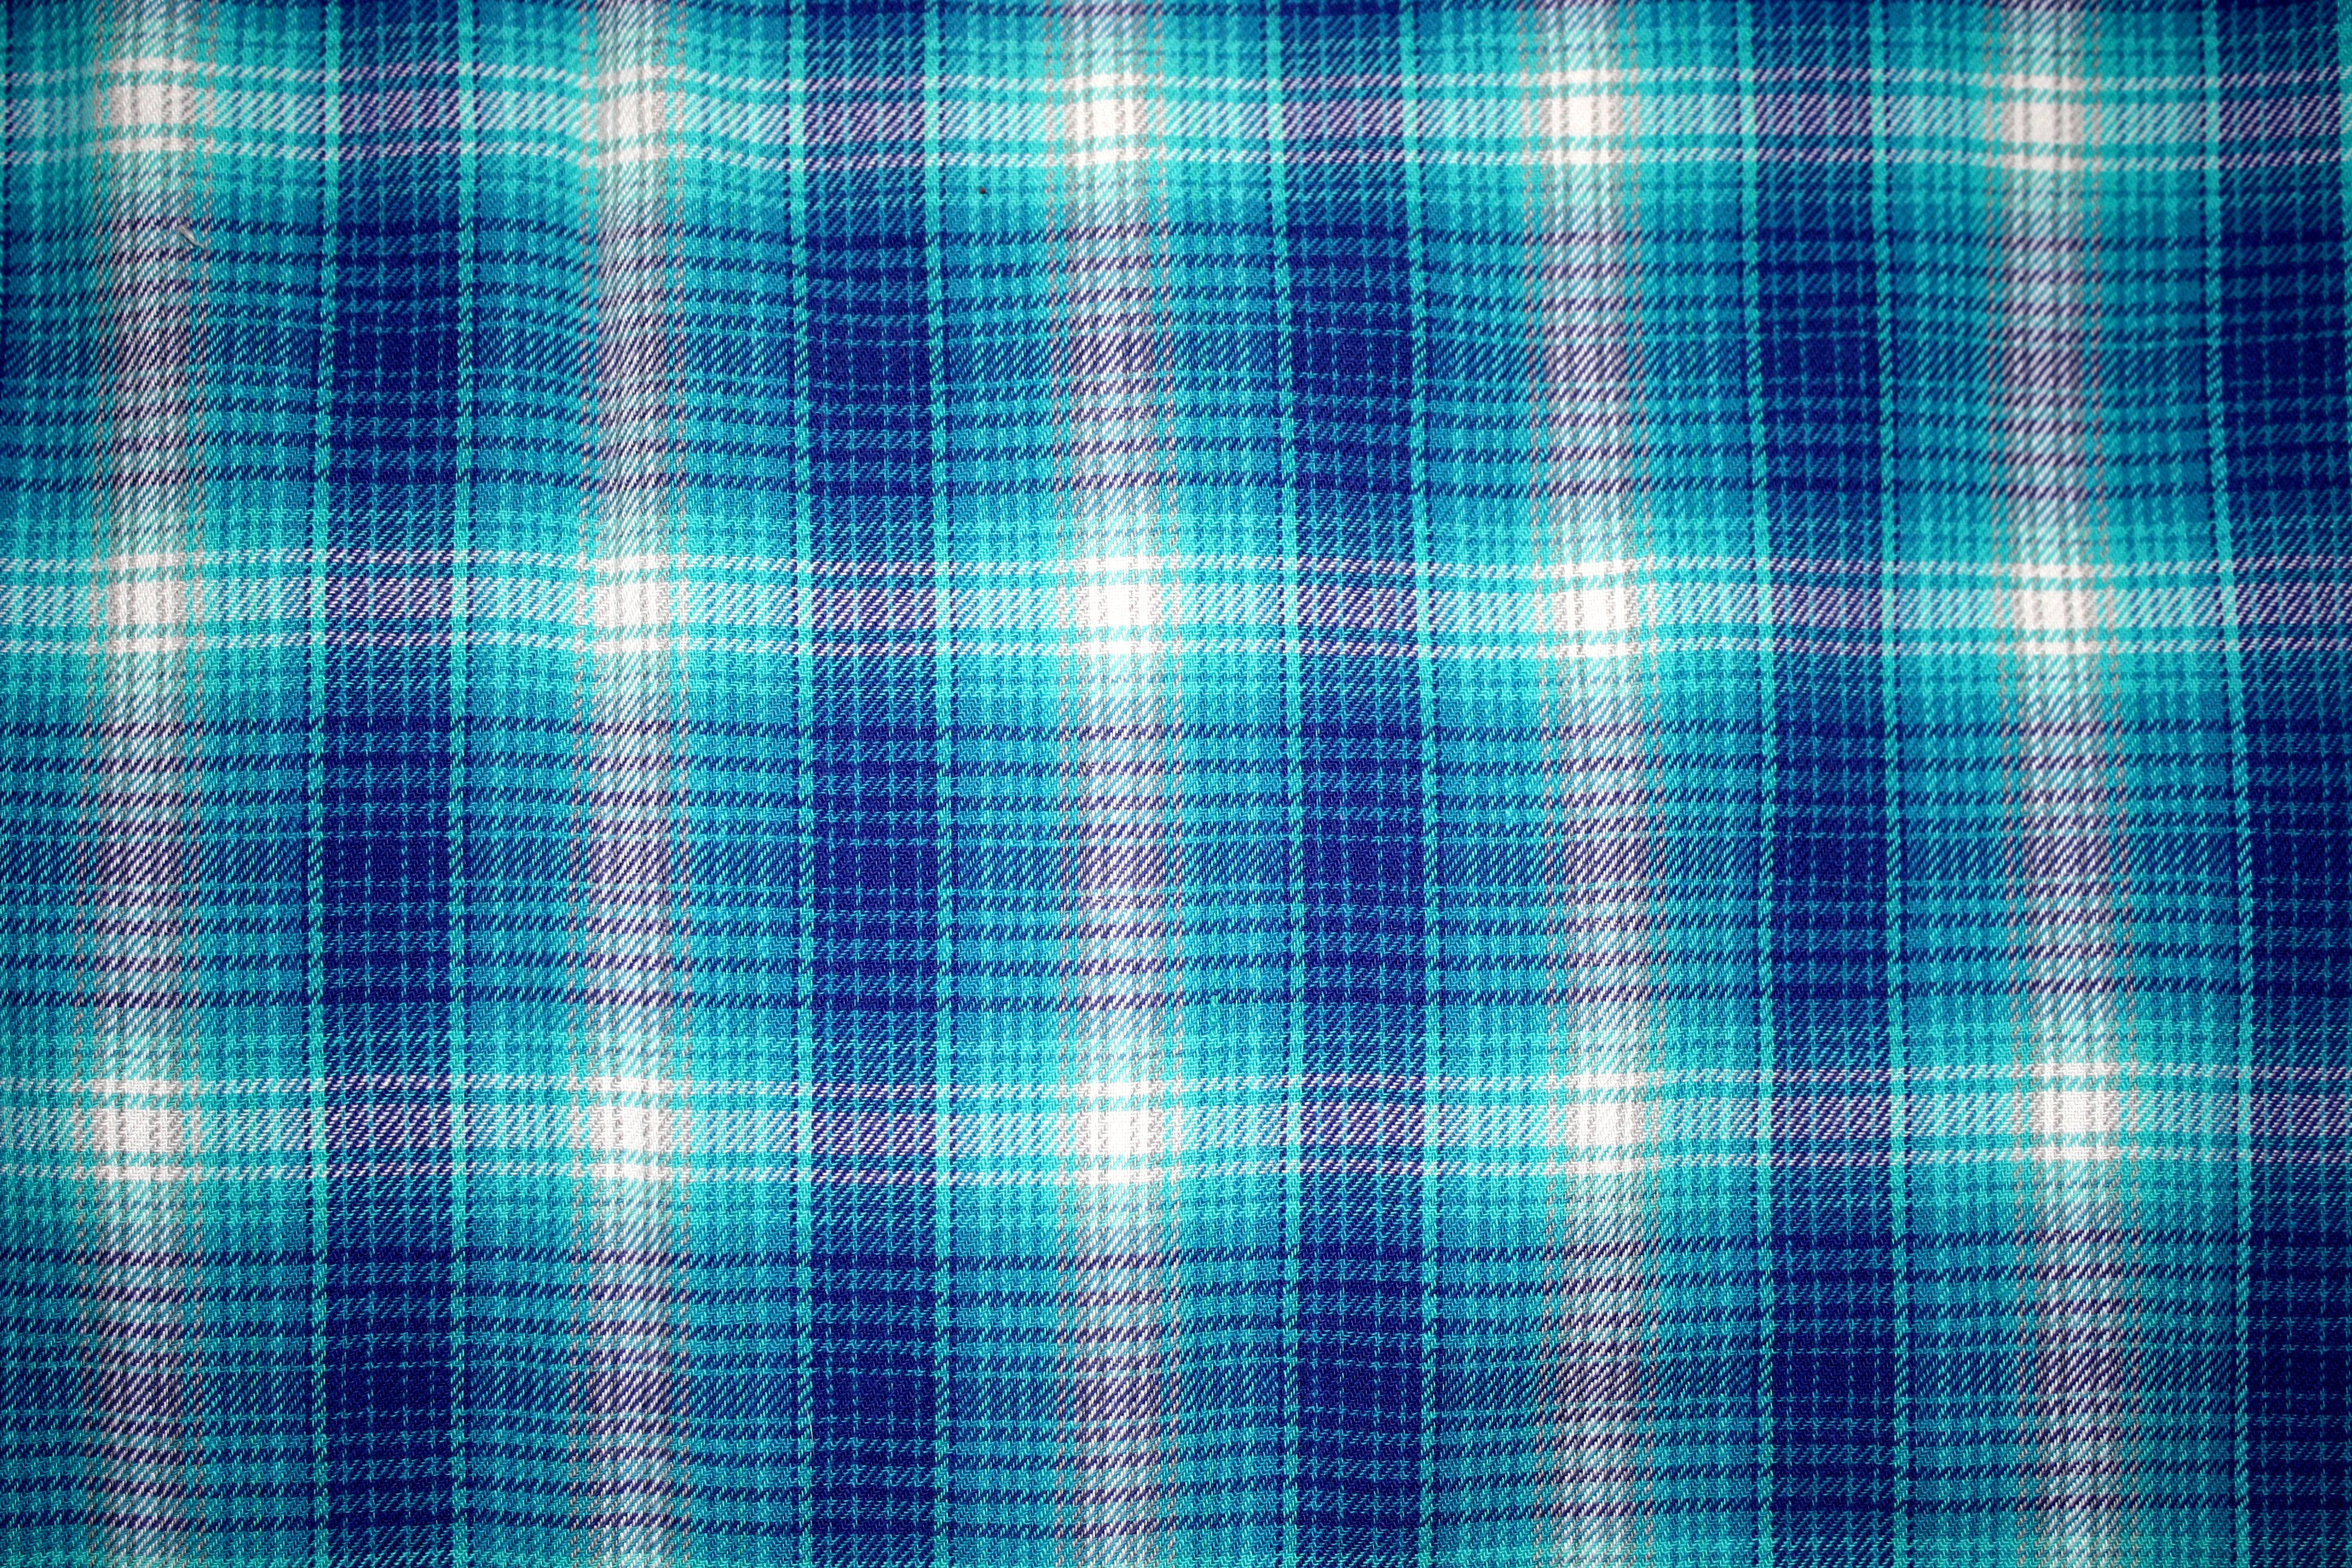 3888x2592 - Blue Plaid 15